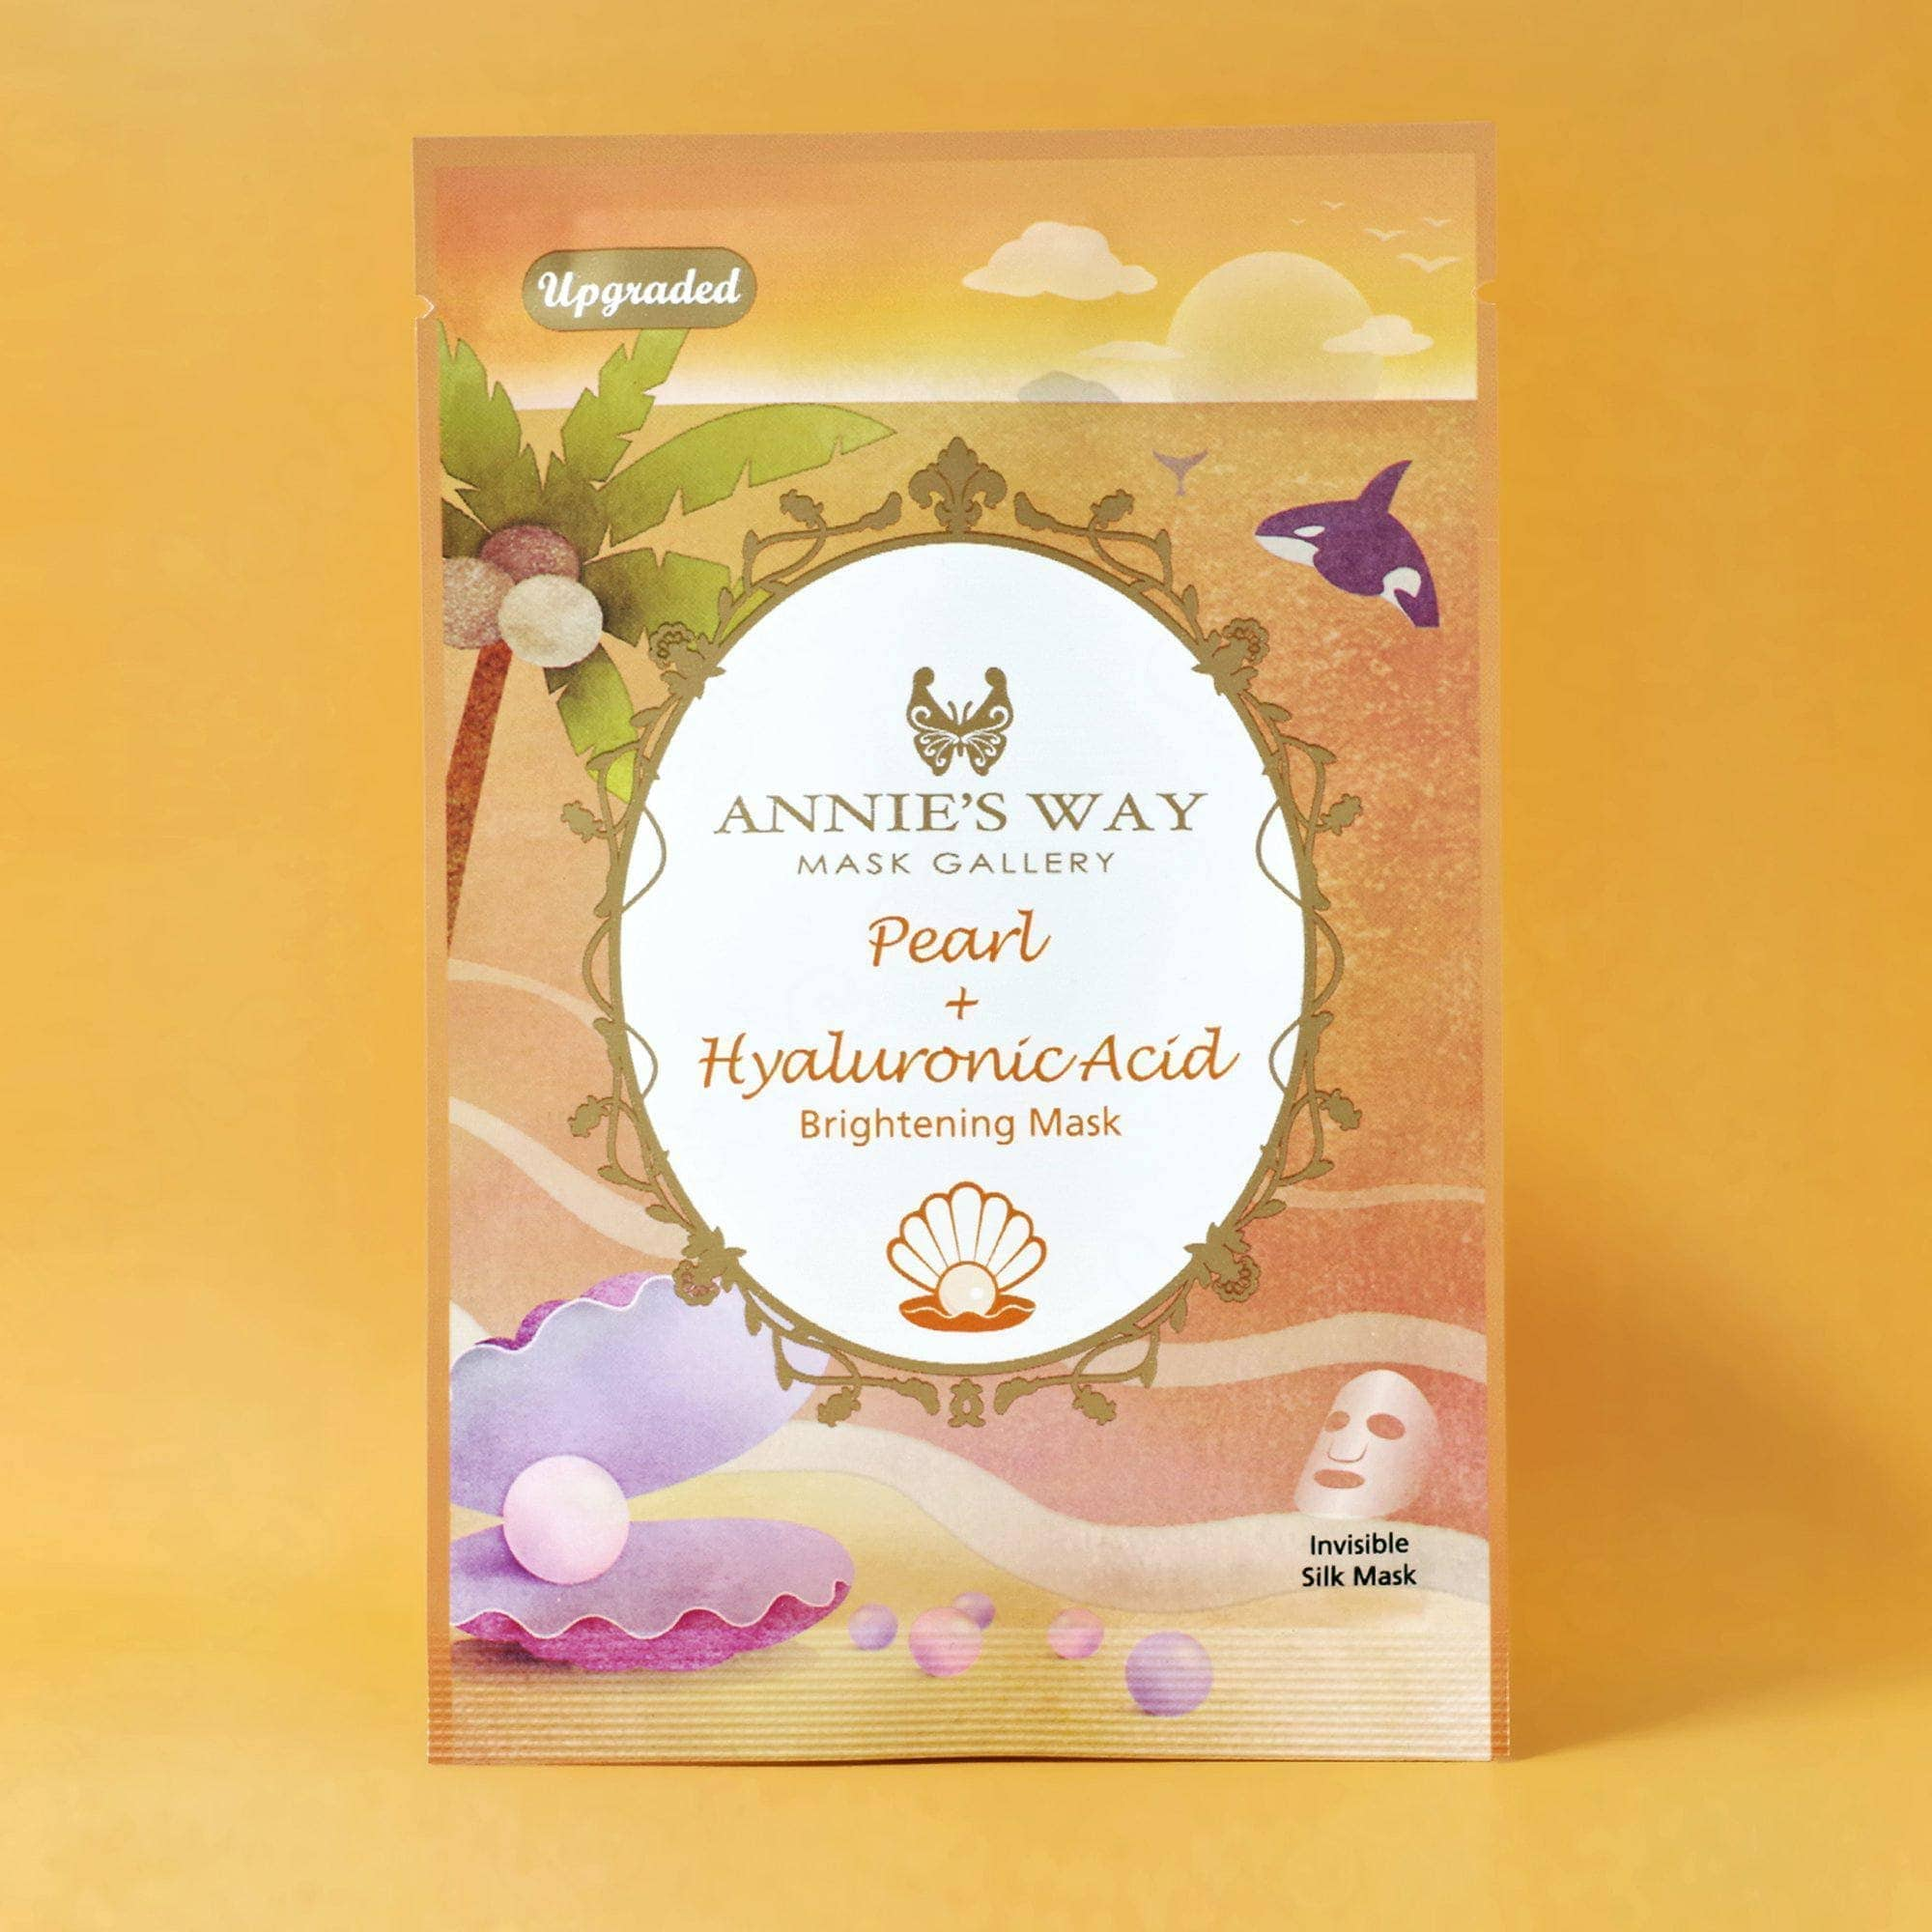 Annie's Way Pearl + Hyaluronic Acid Brightening Sheet Mask